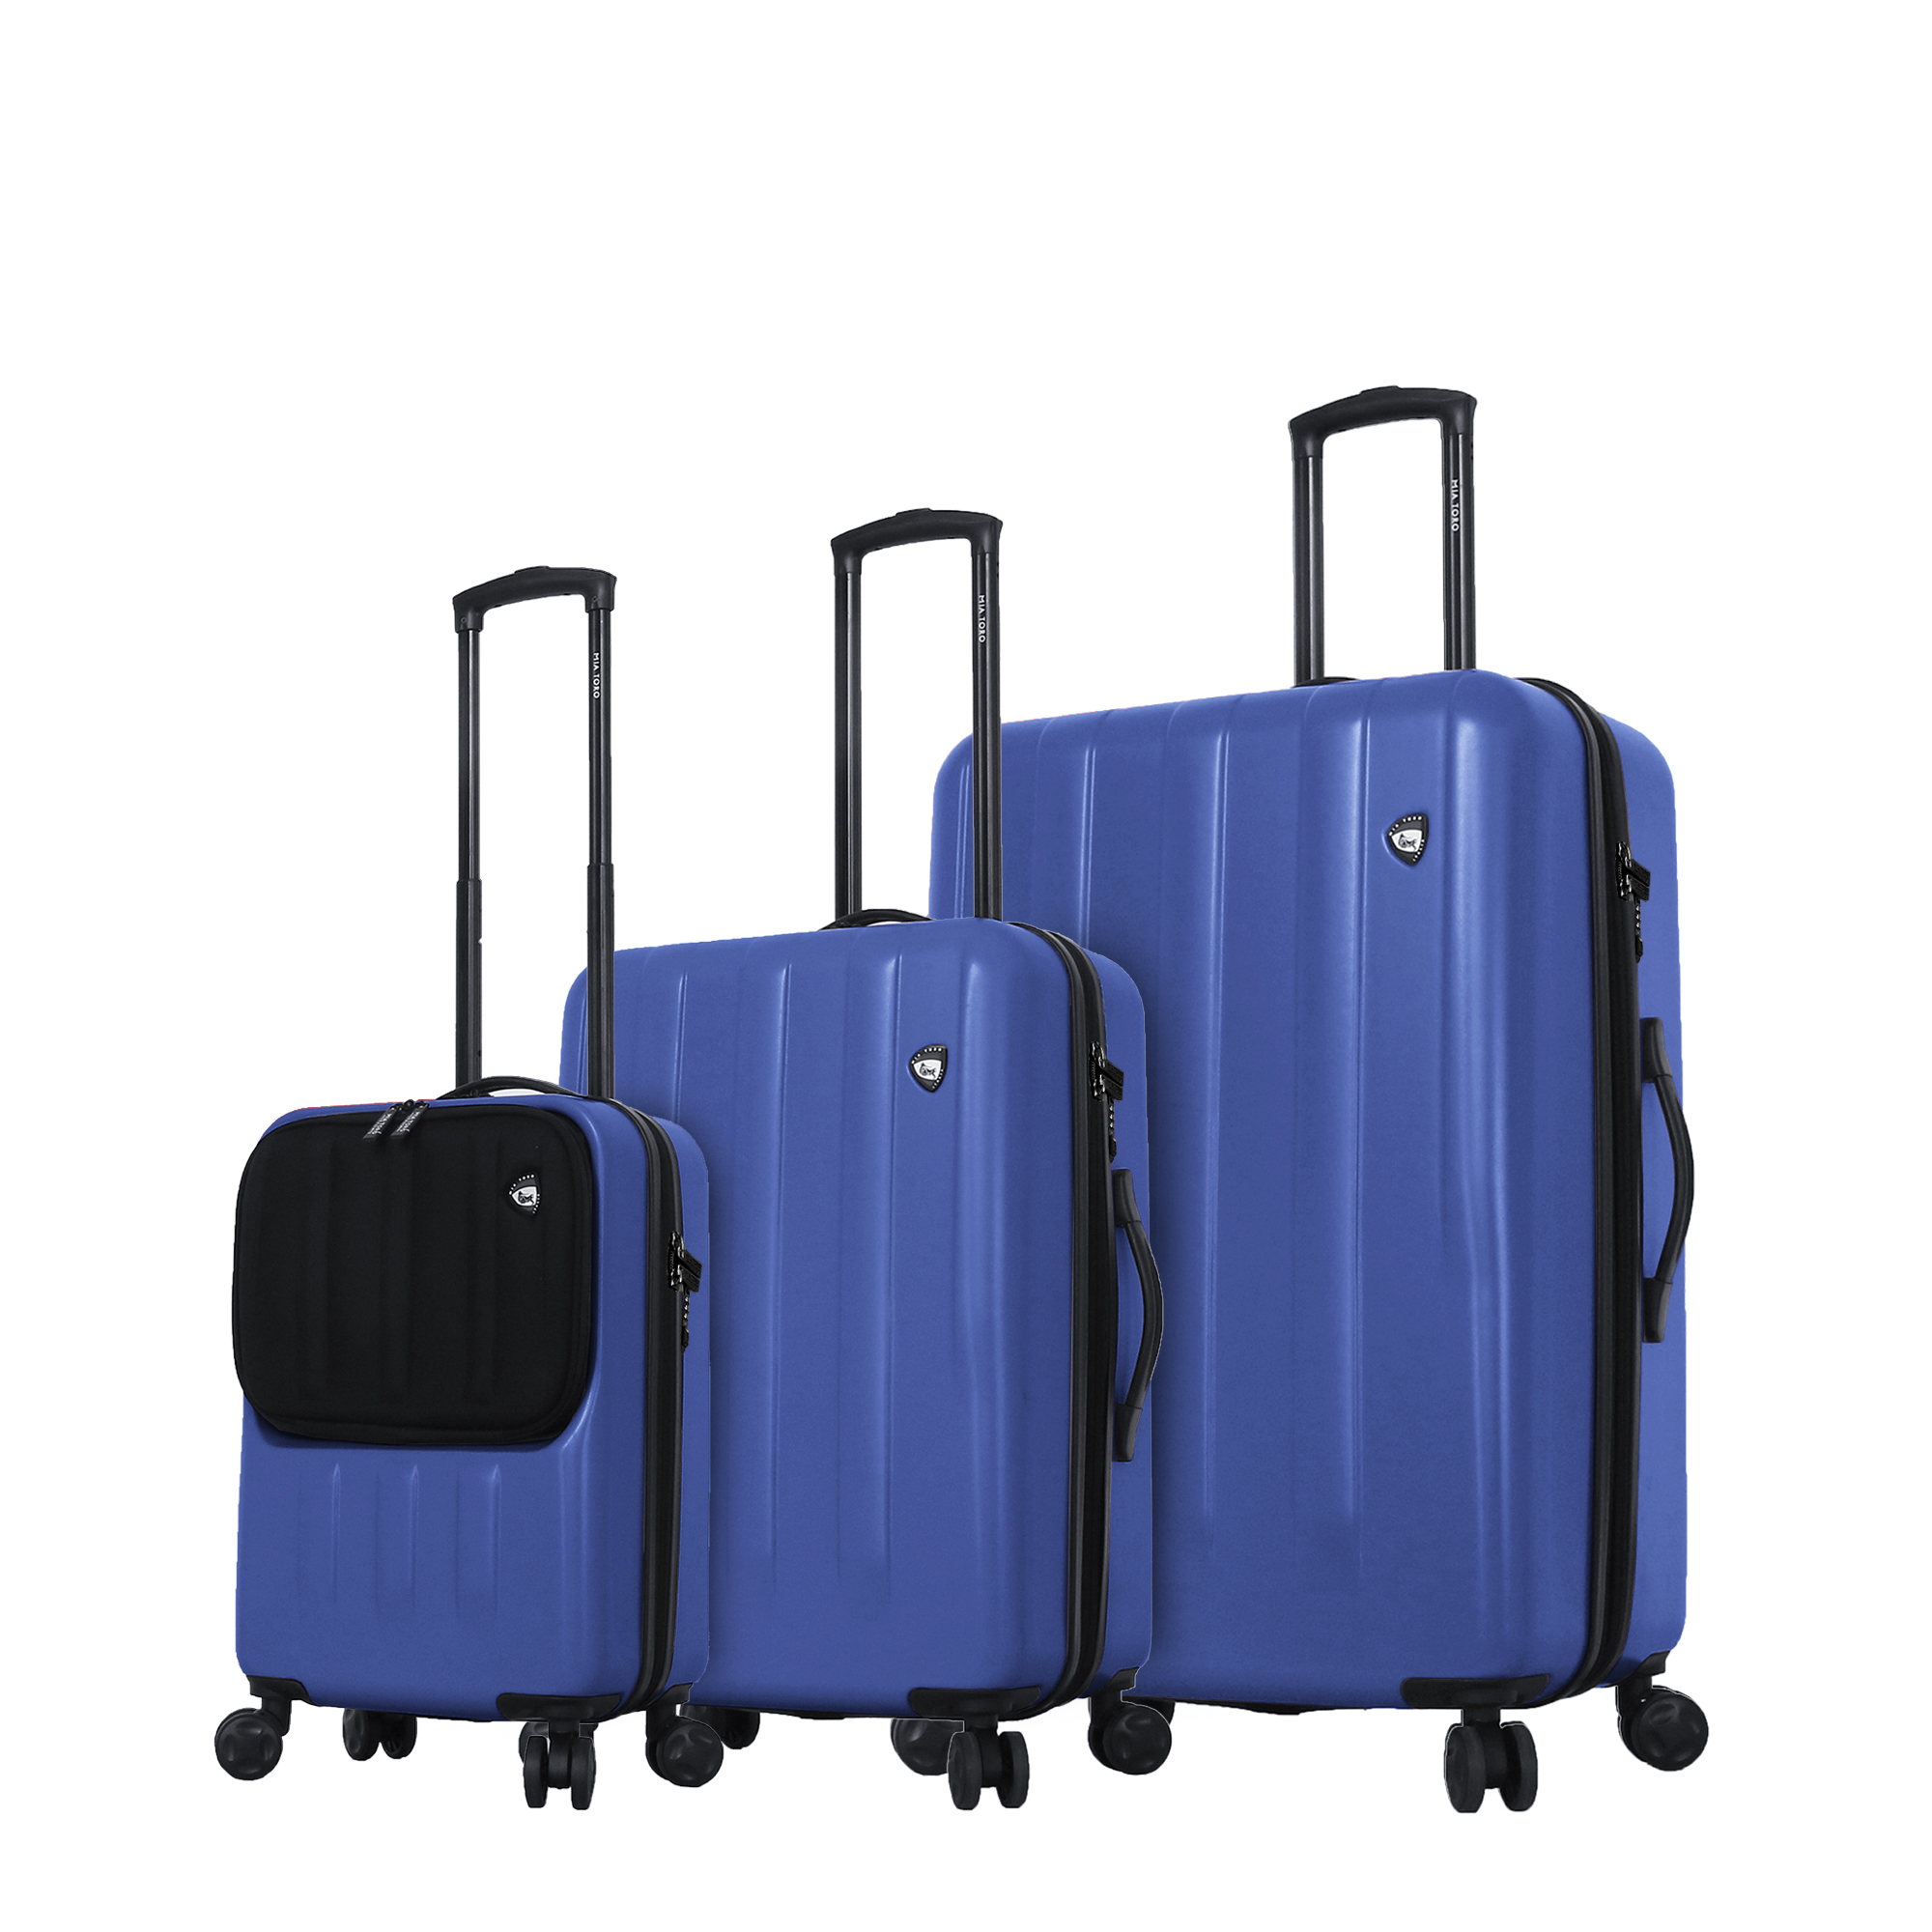 Mia Toro Furbo Luggage